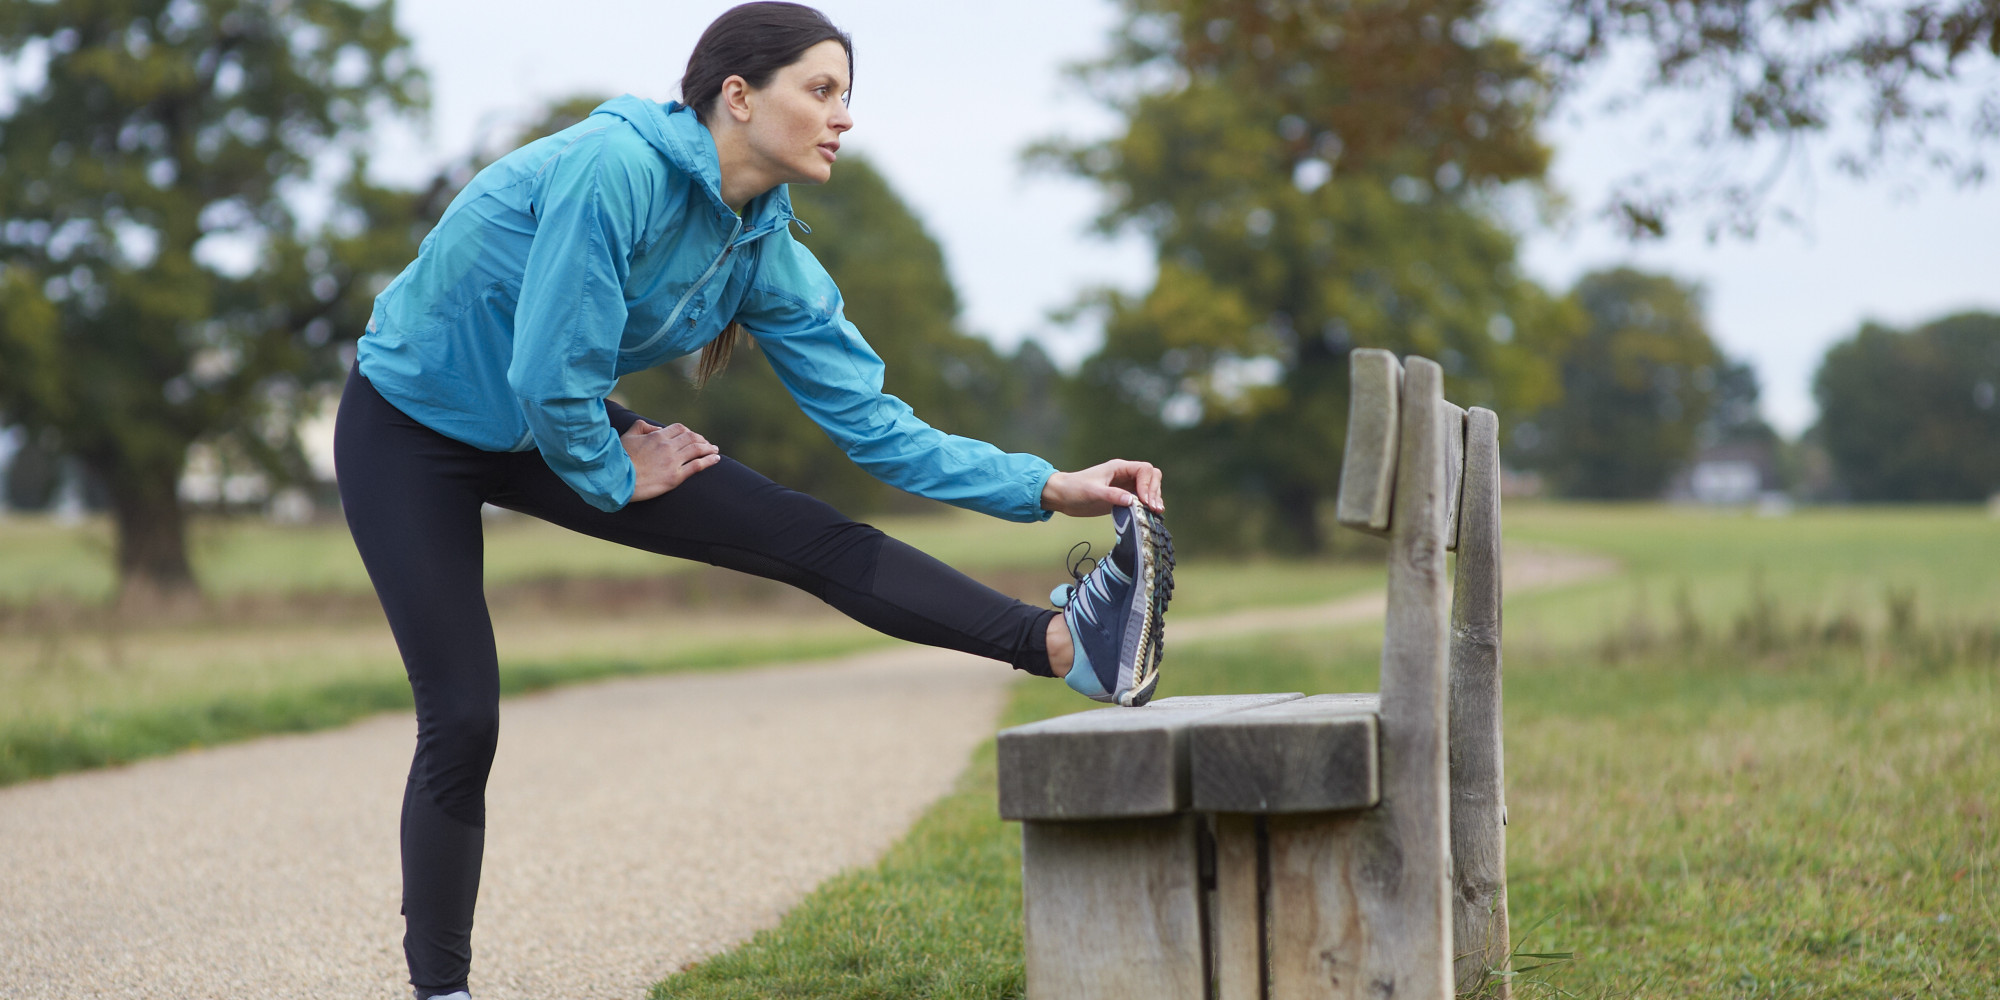 Doing This Could Make You More Motivated To Exercise | HuffPost